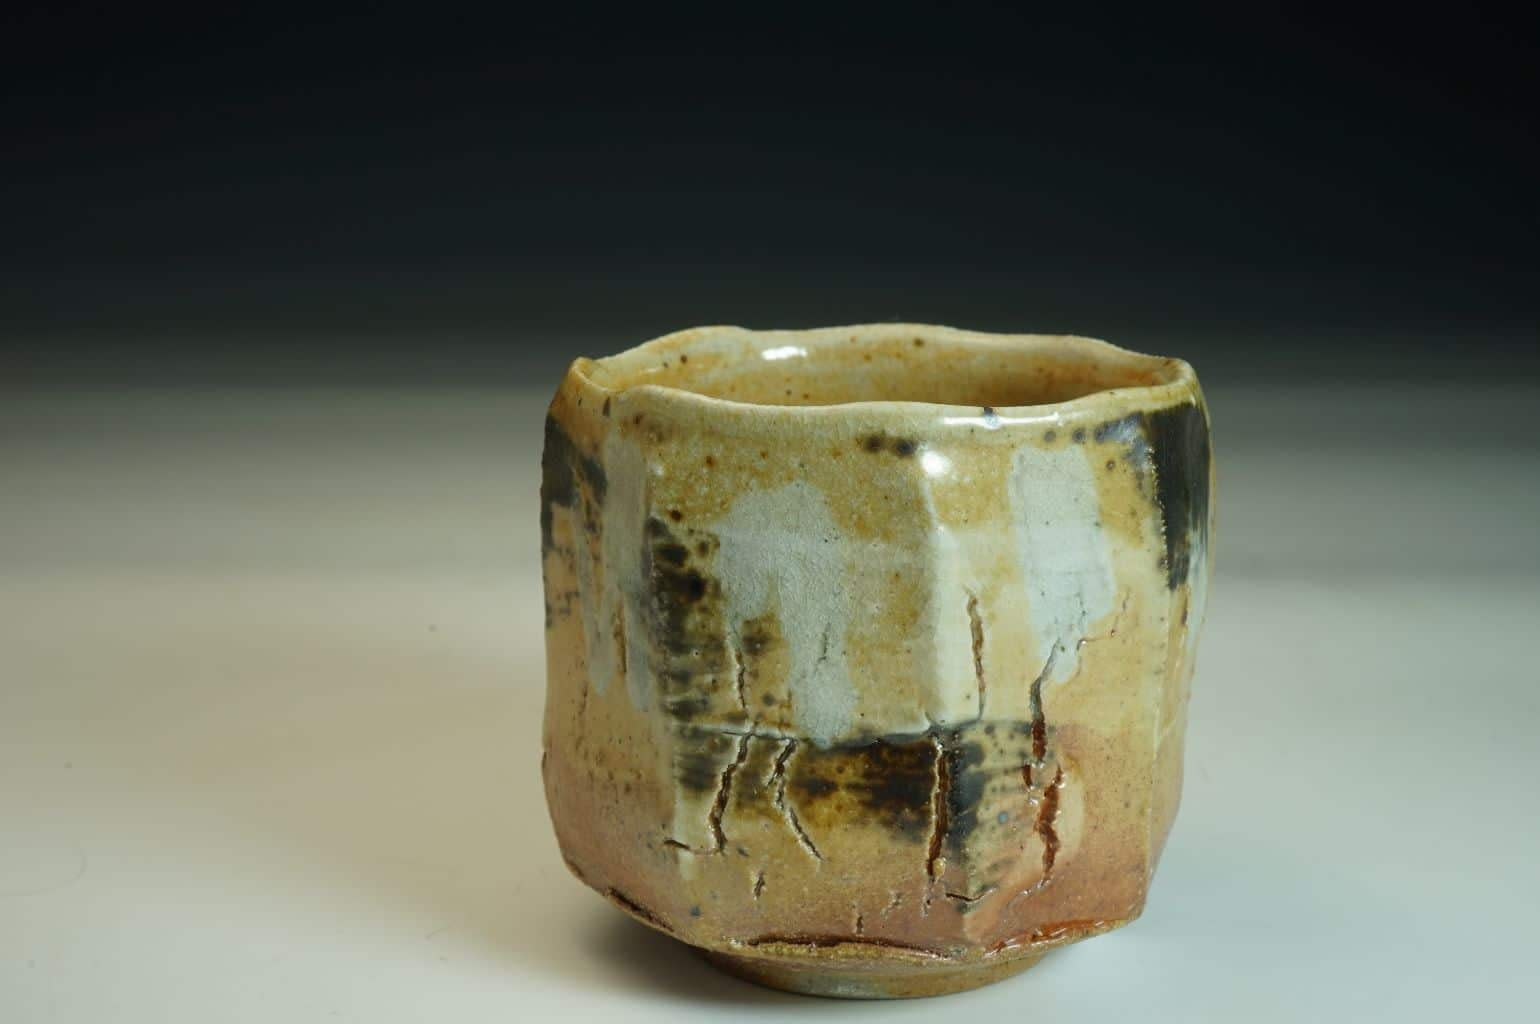 Wood-fired Chawan tea bowl. Sculptured surface with Shino glaze and salt.